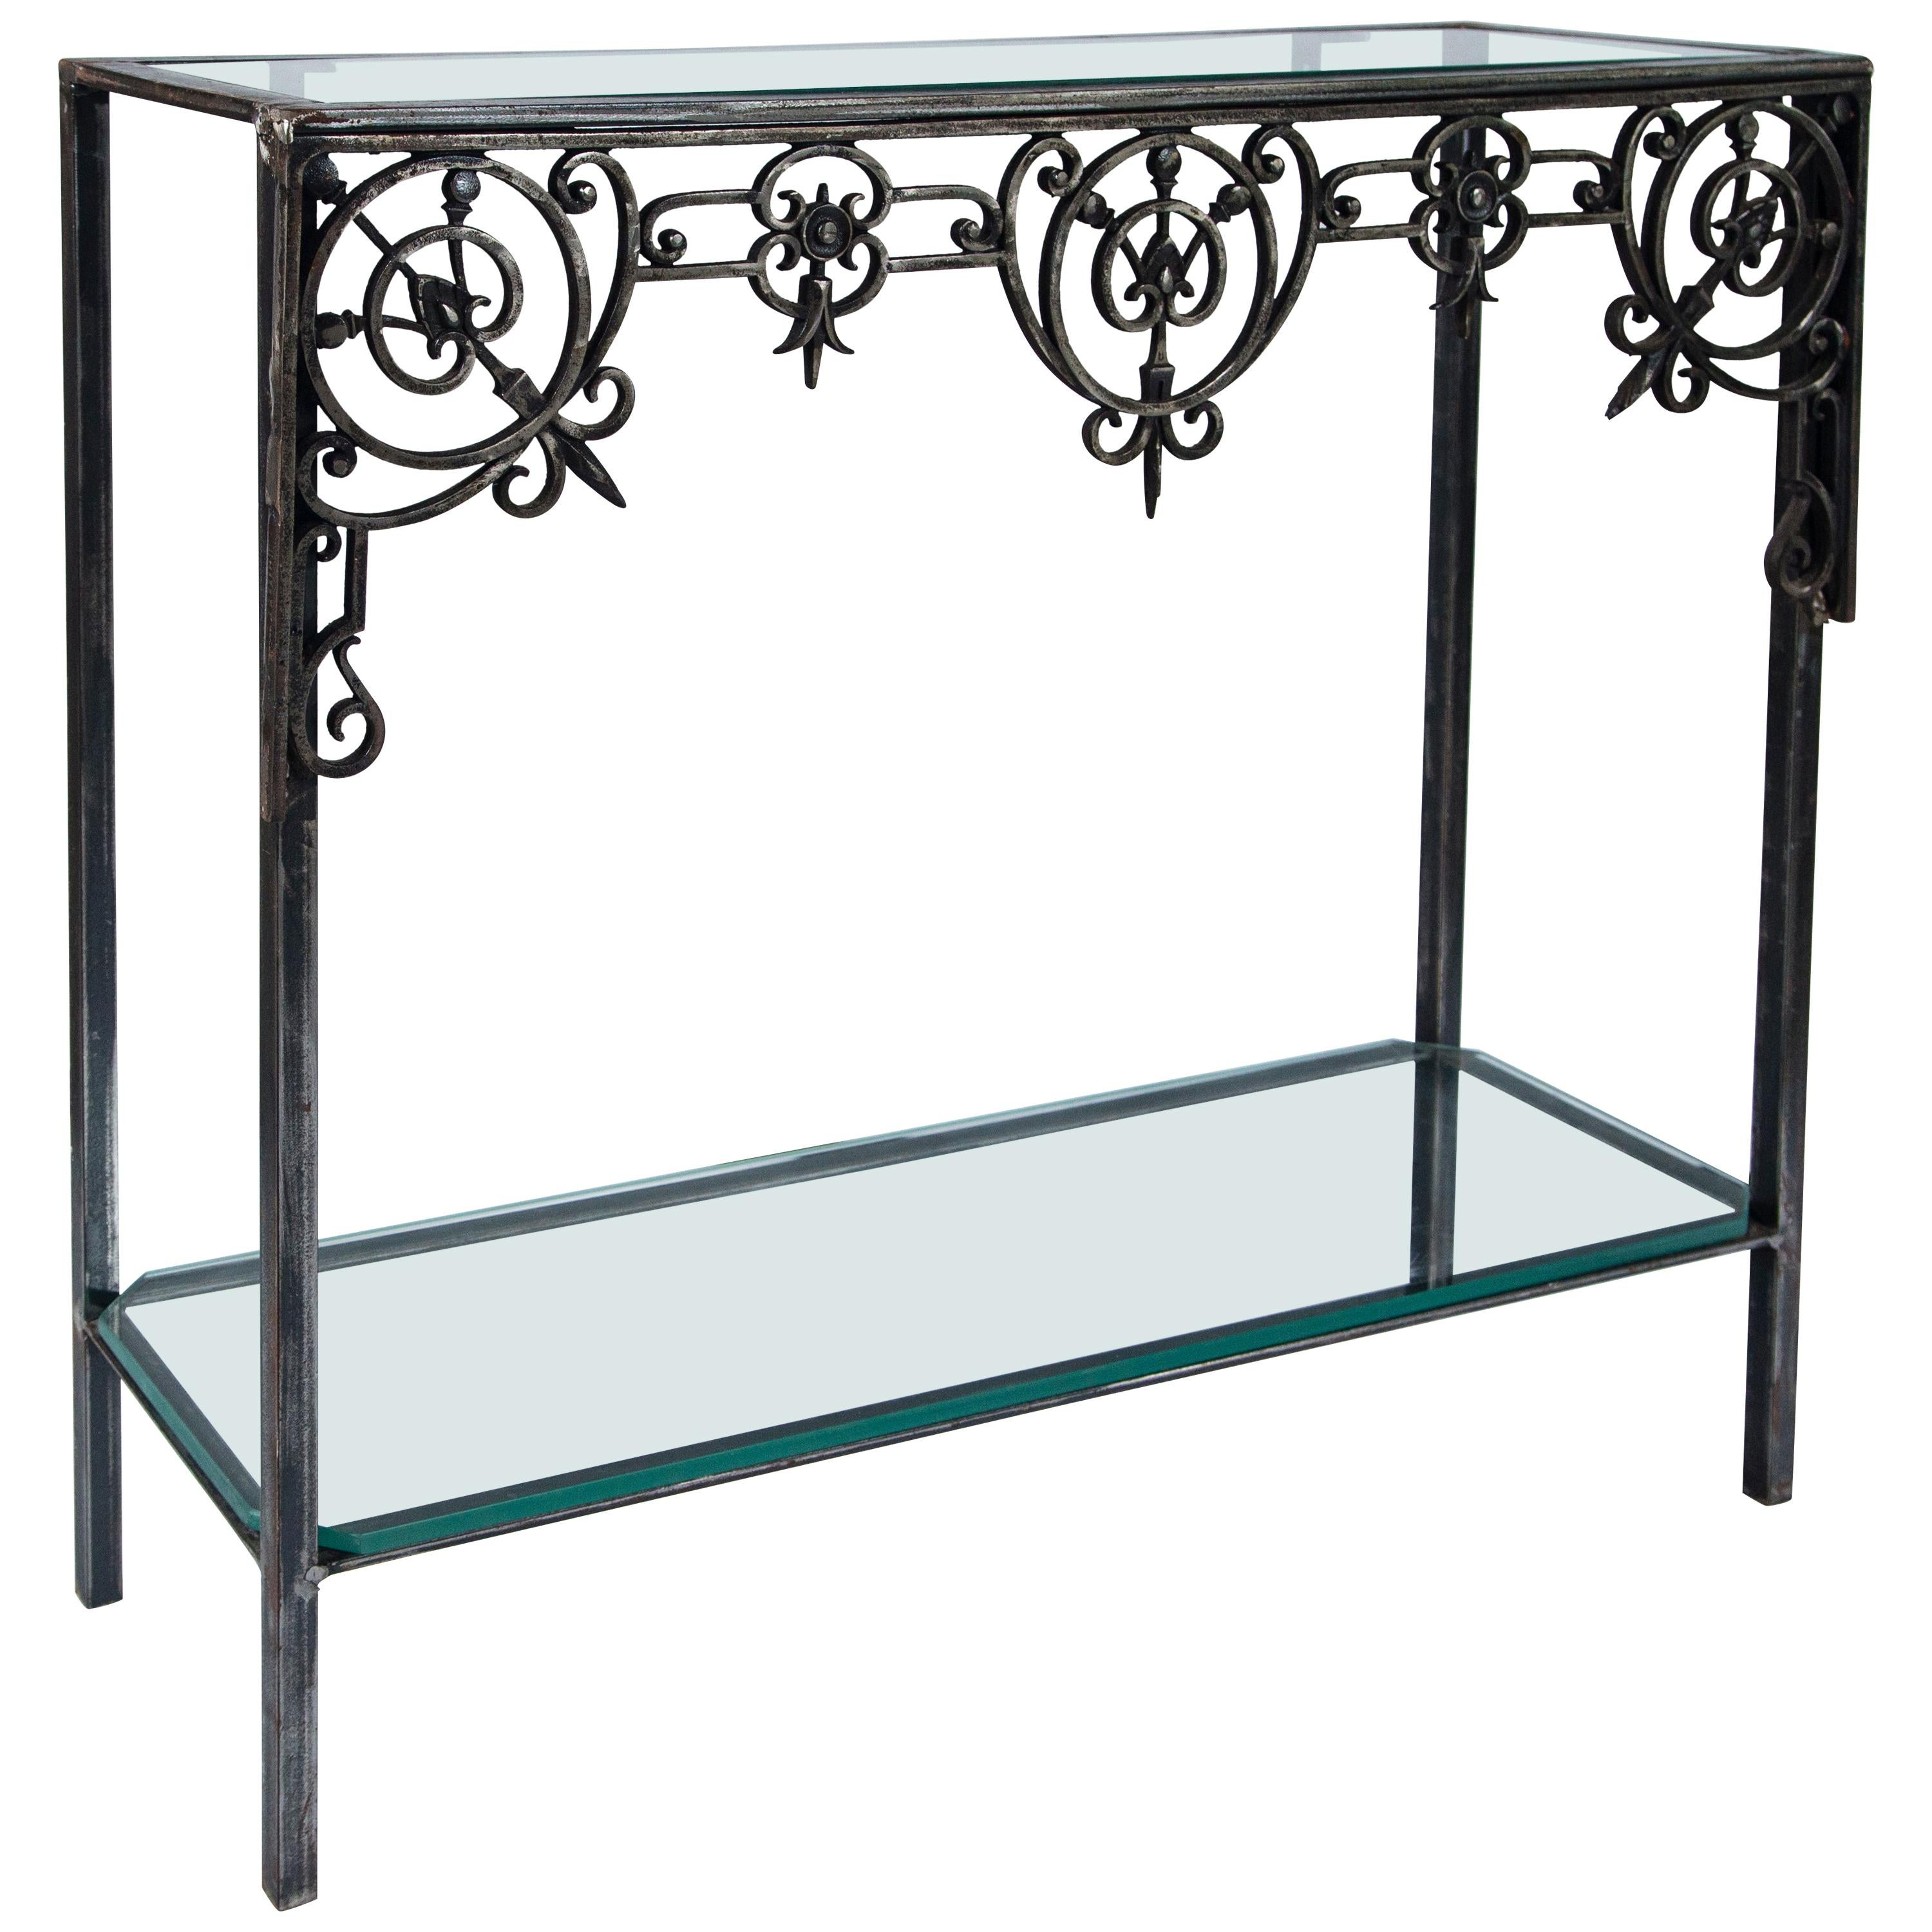 Antique Architectural Iron Custom Console Table, France